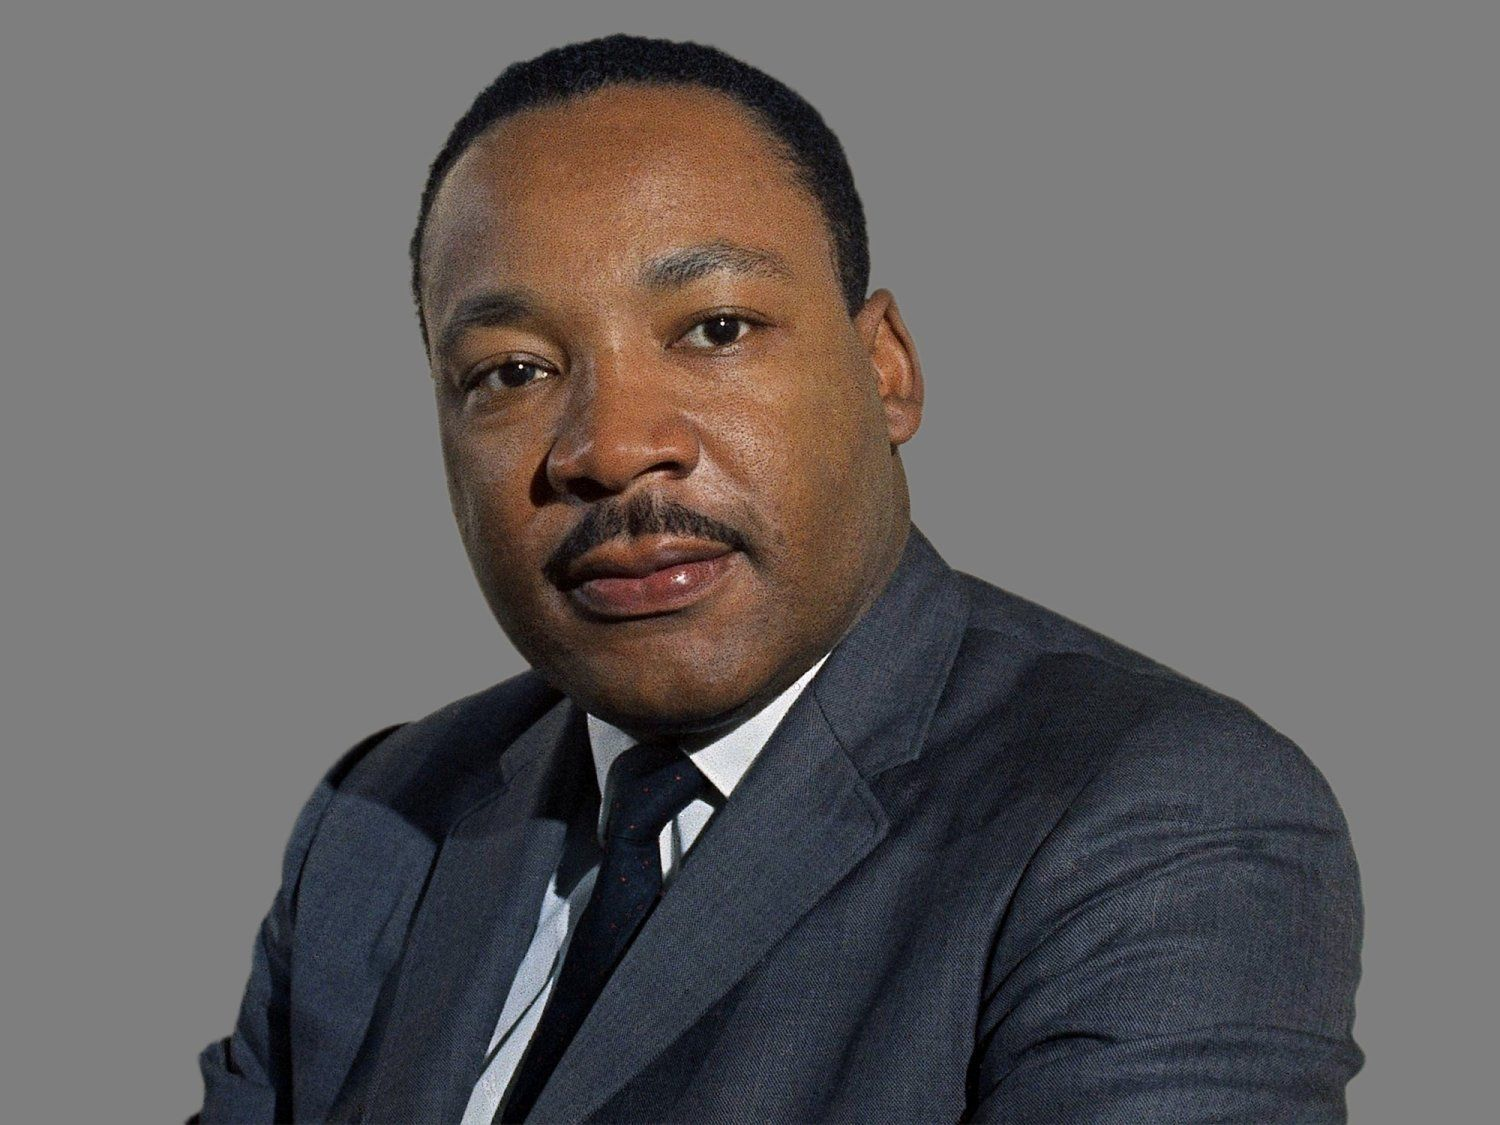 Martin Luther King Jr headshot, civil rights leader, graphic element on gray